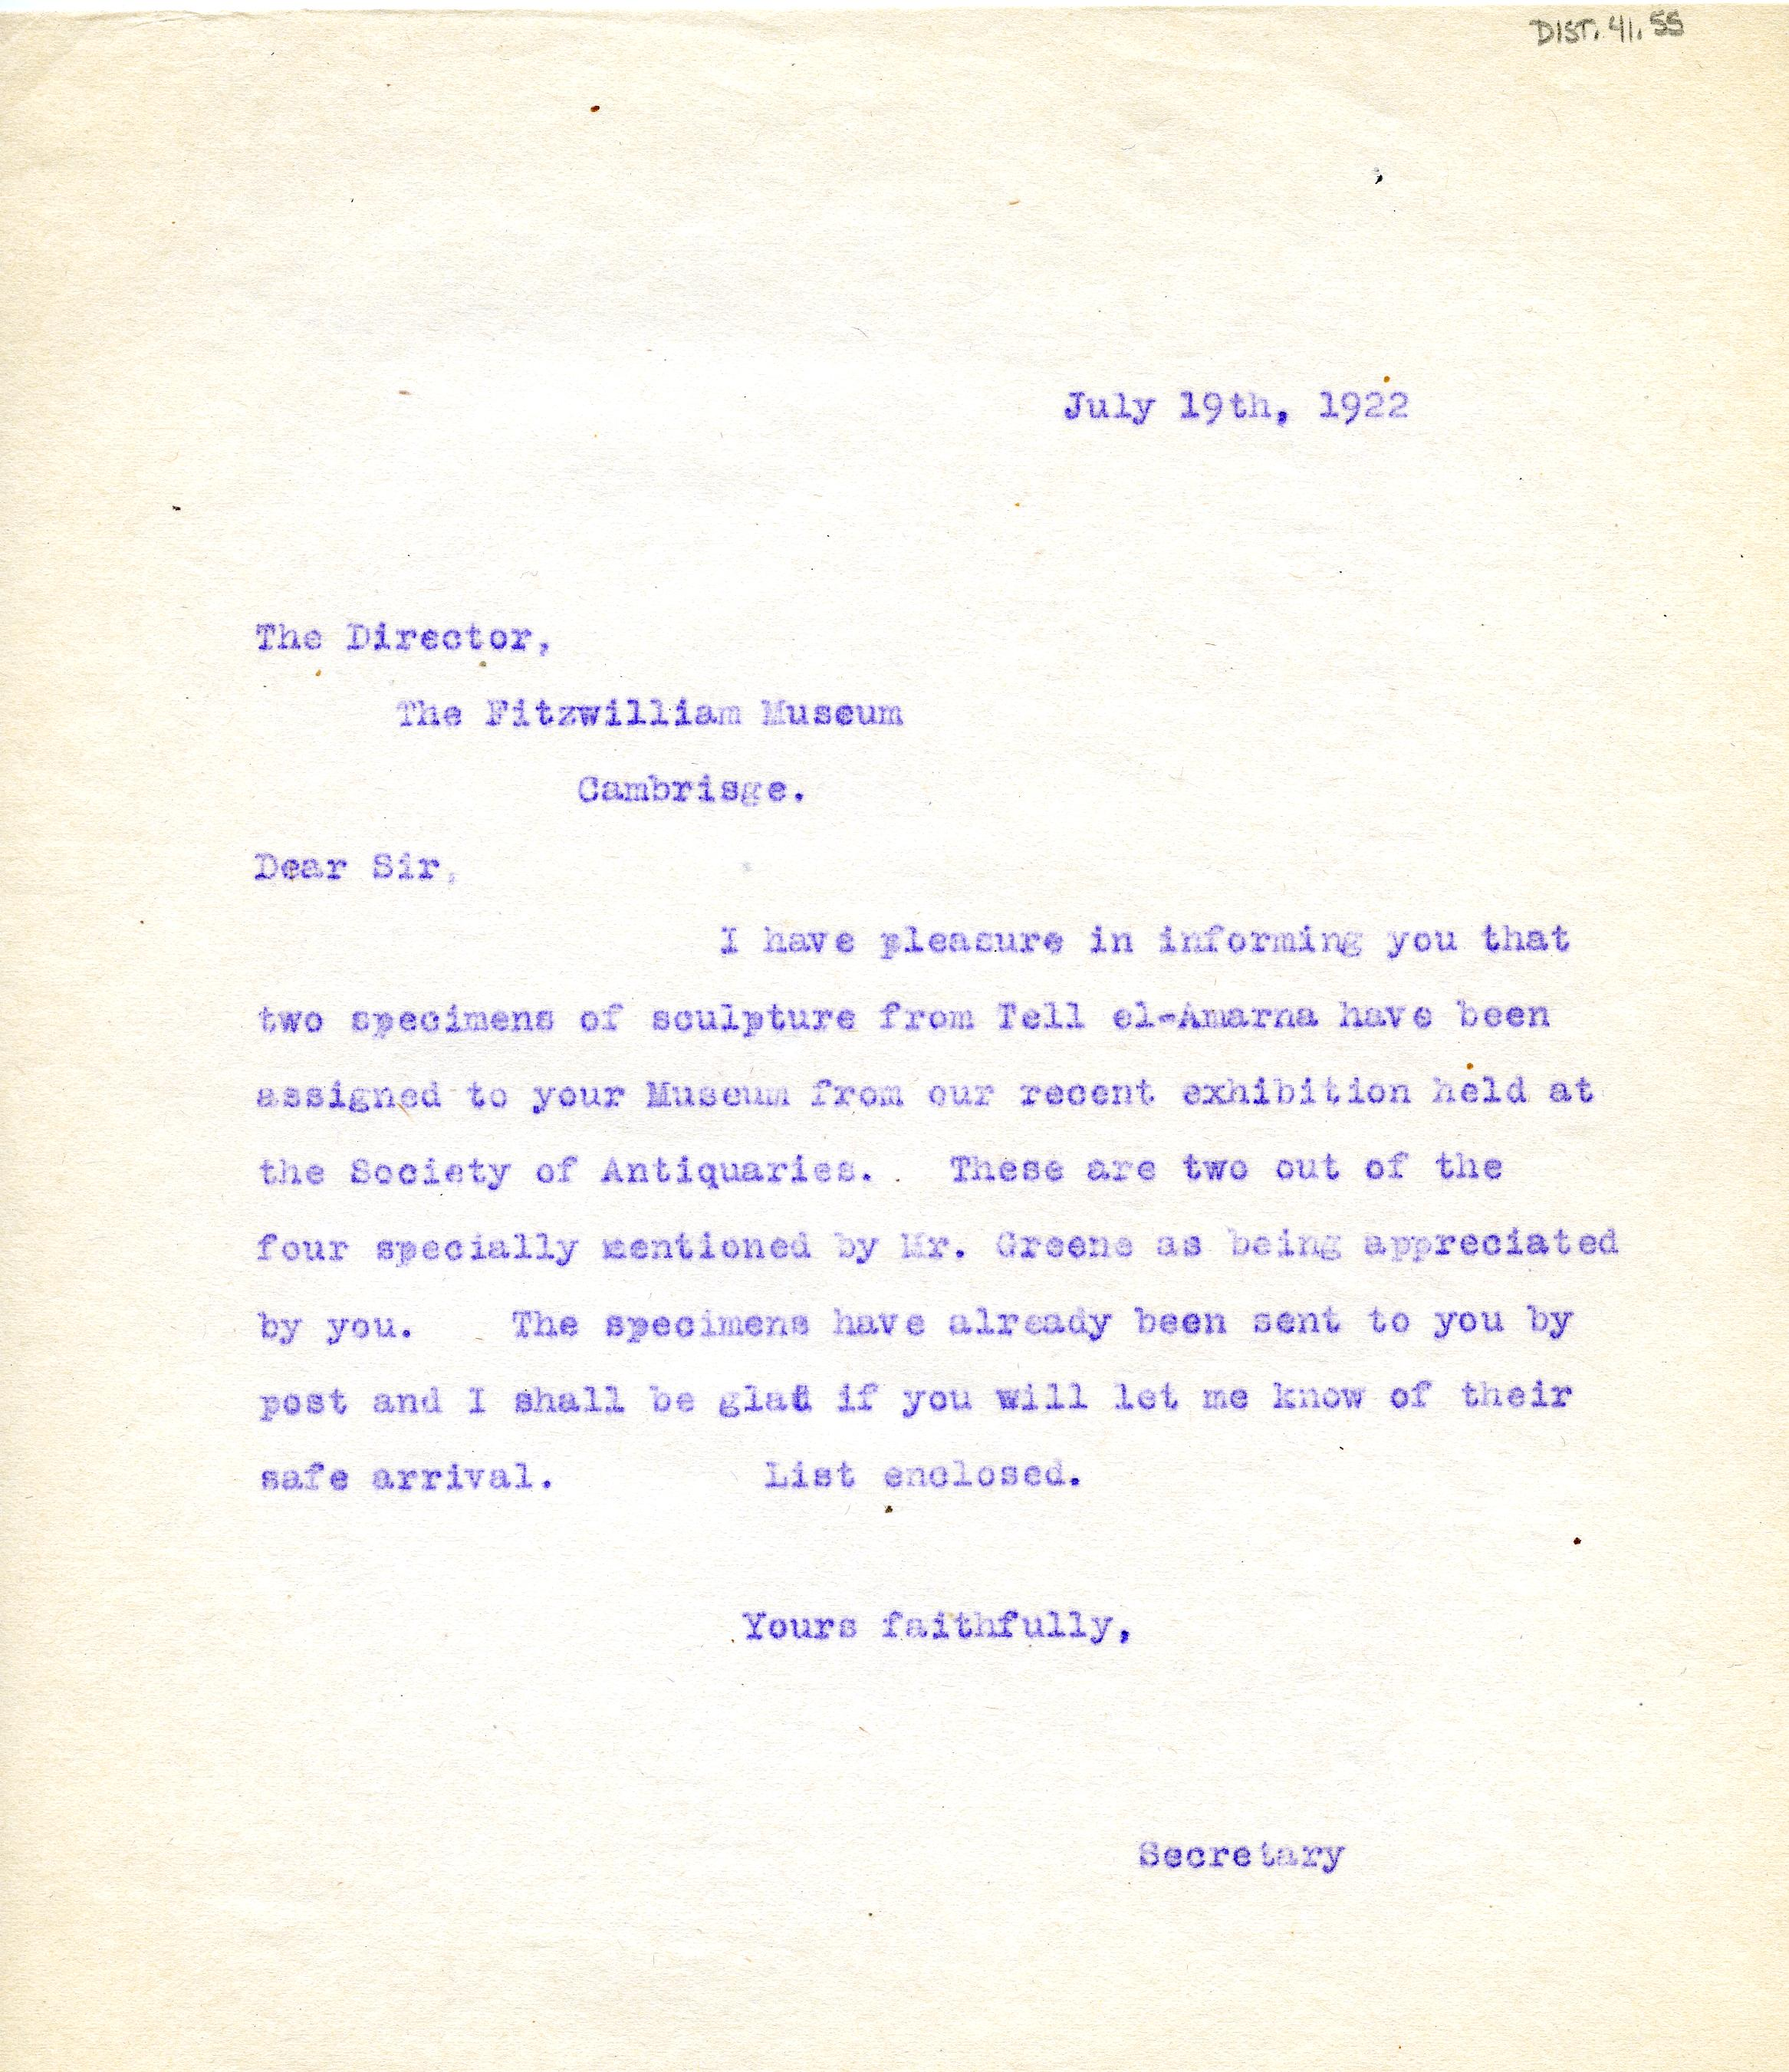 1922-76 Miscellaneous correspondence with museums DIST.41.55